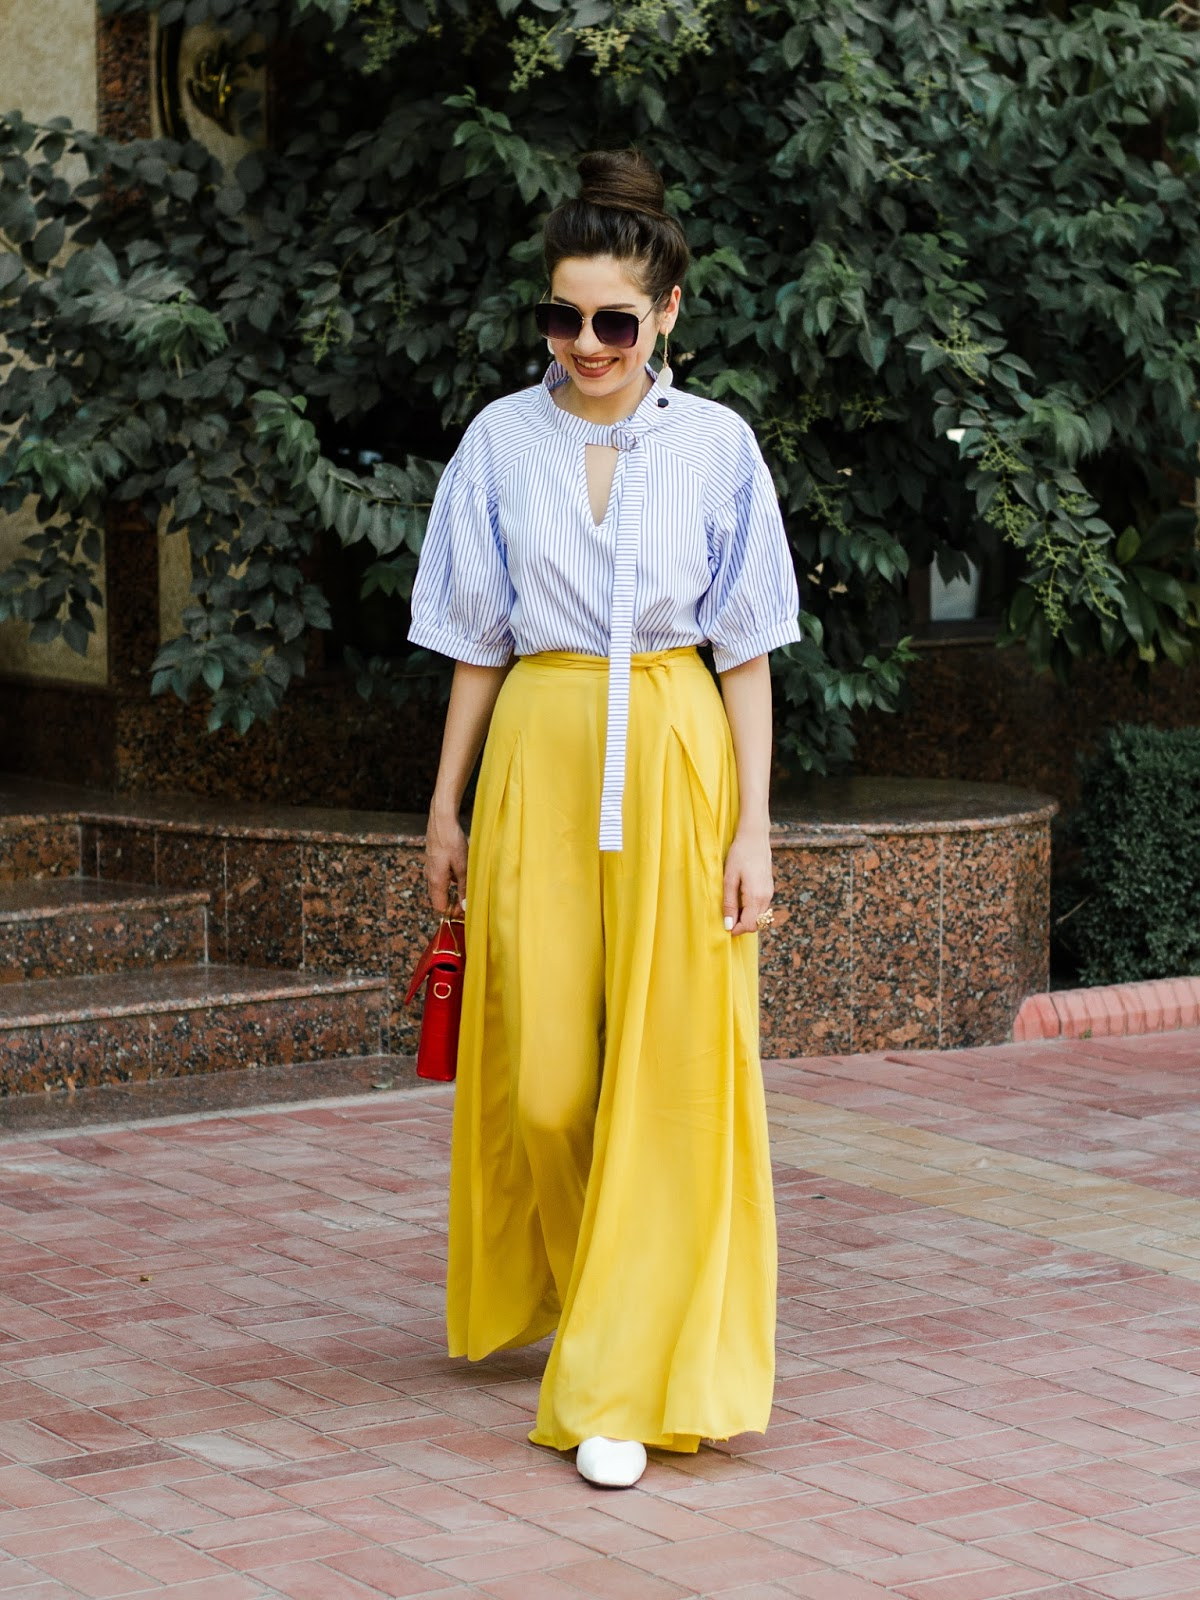 fashion blogger diyora beta diyorasnotes диера бета wide leg pants how to wear striped shirt top red bag casual outfit summer 2017 street style